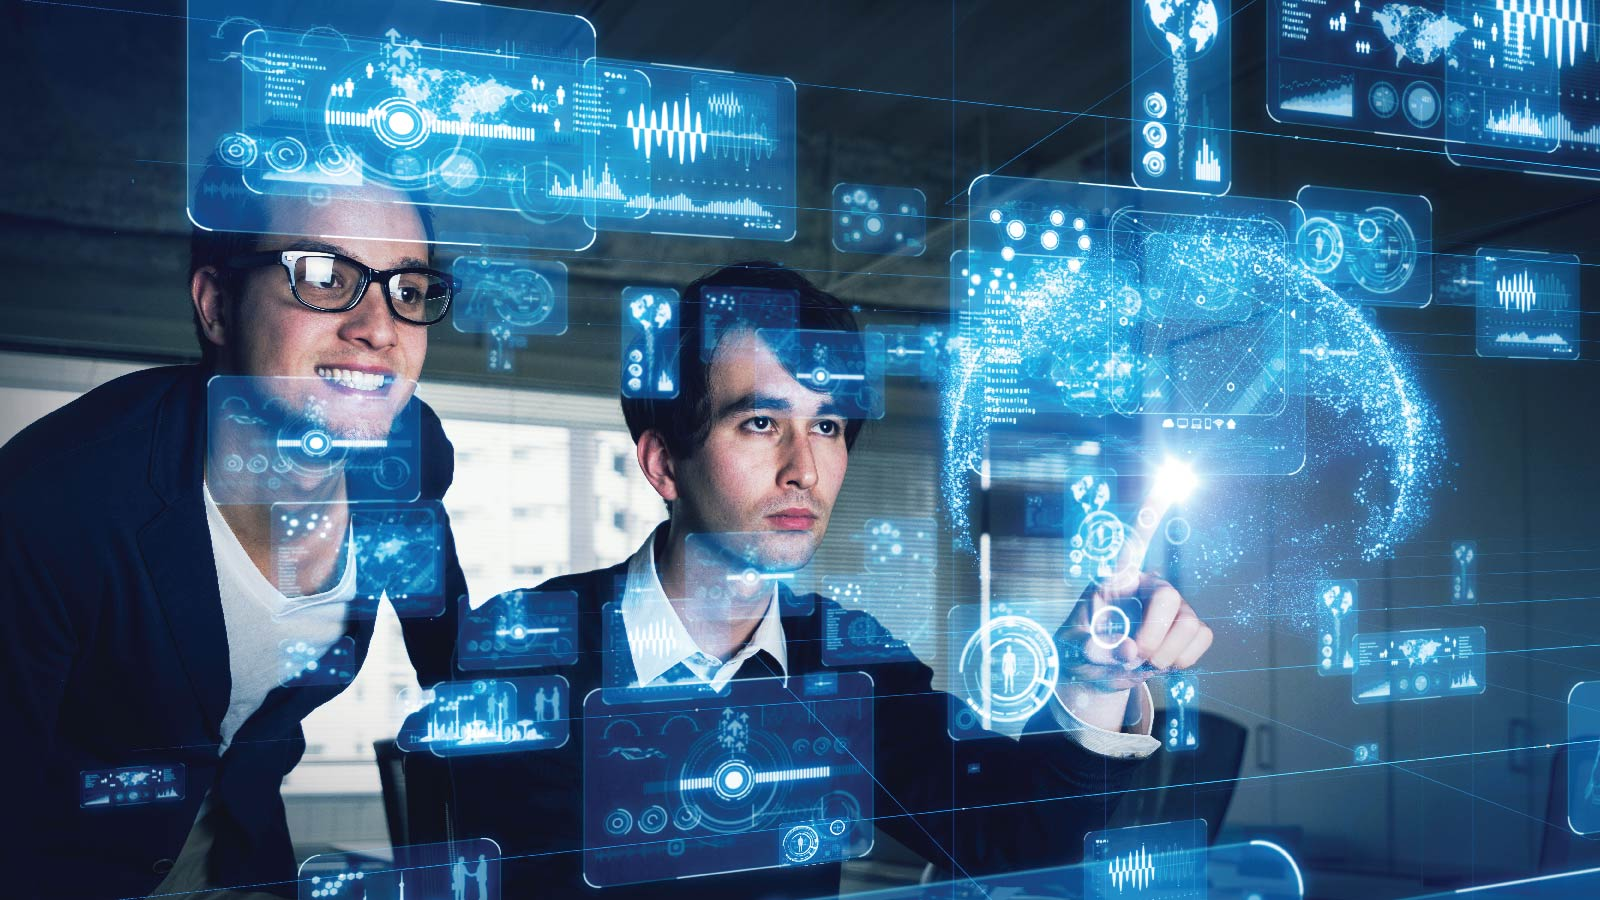 Digital Transformation – Employees Observe Areas of Improvement in Their Organizations